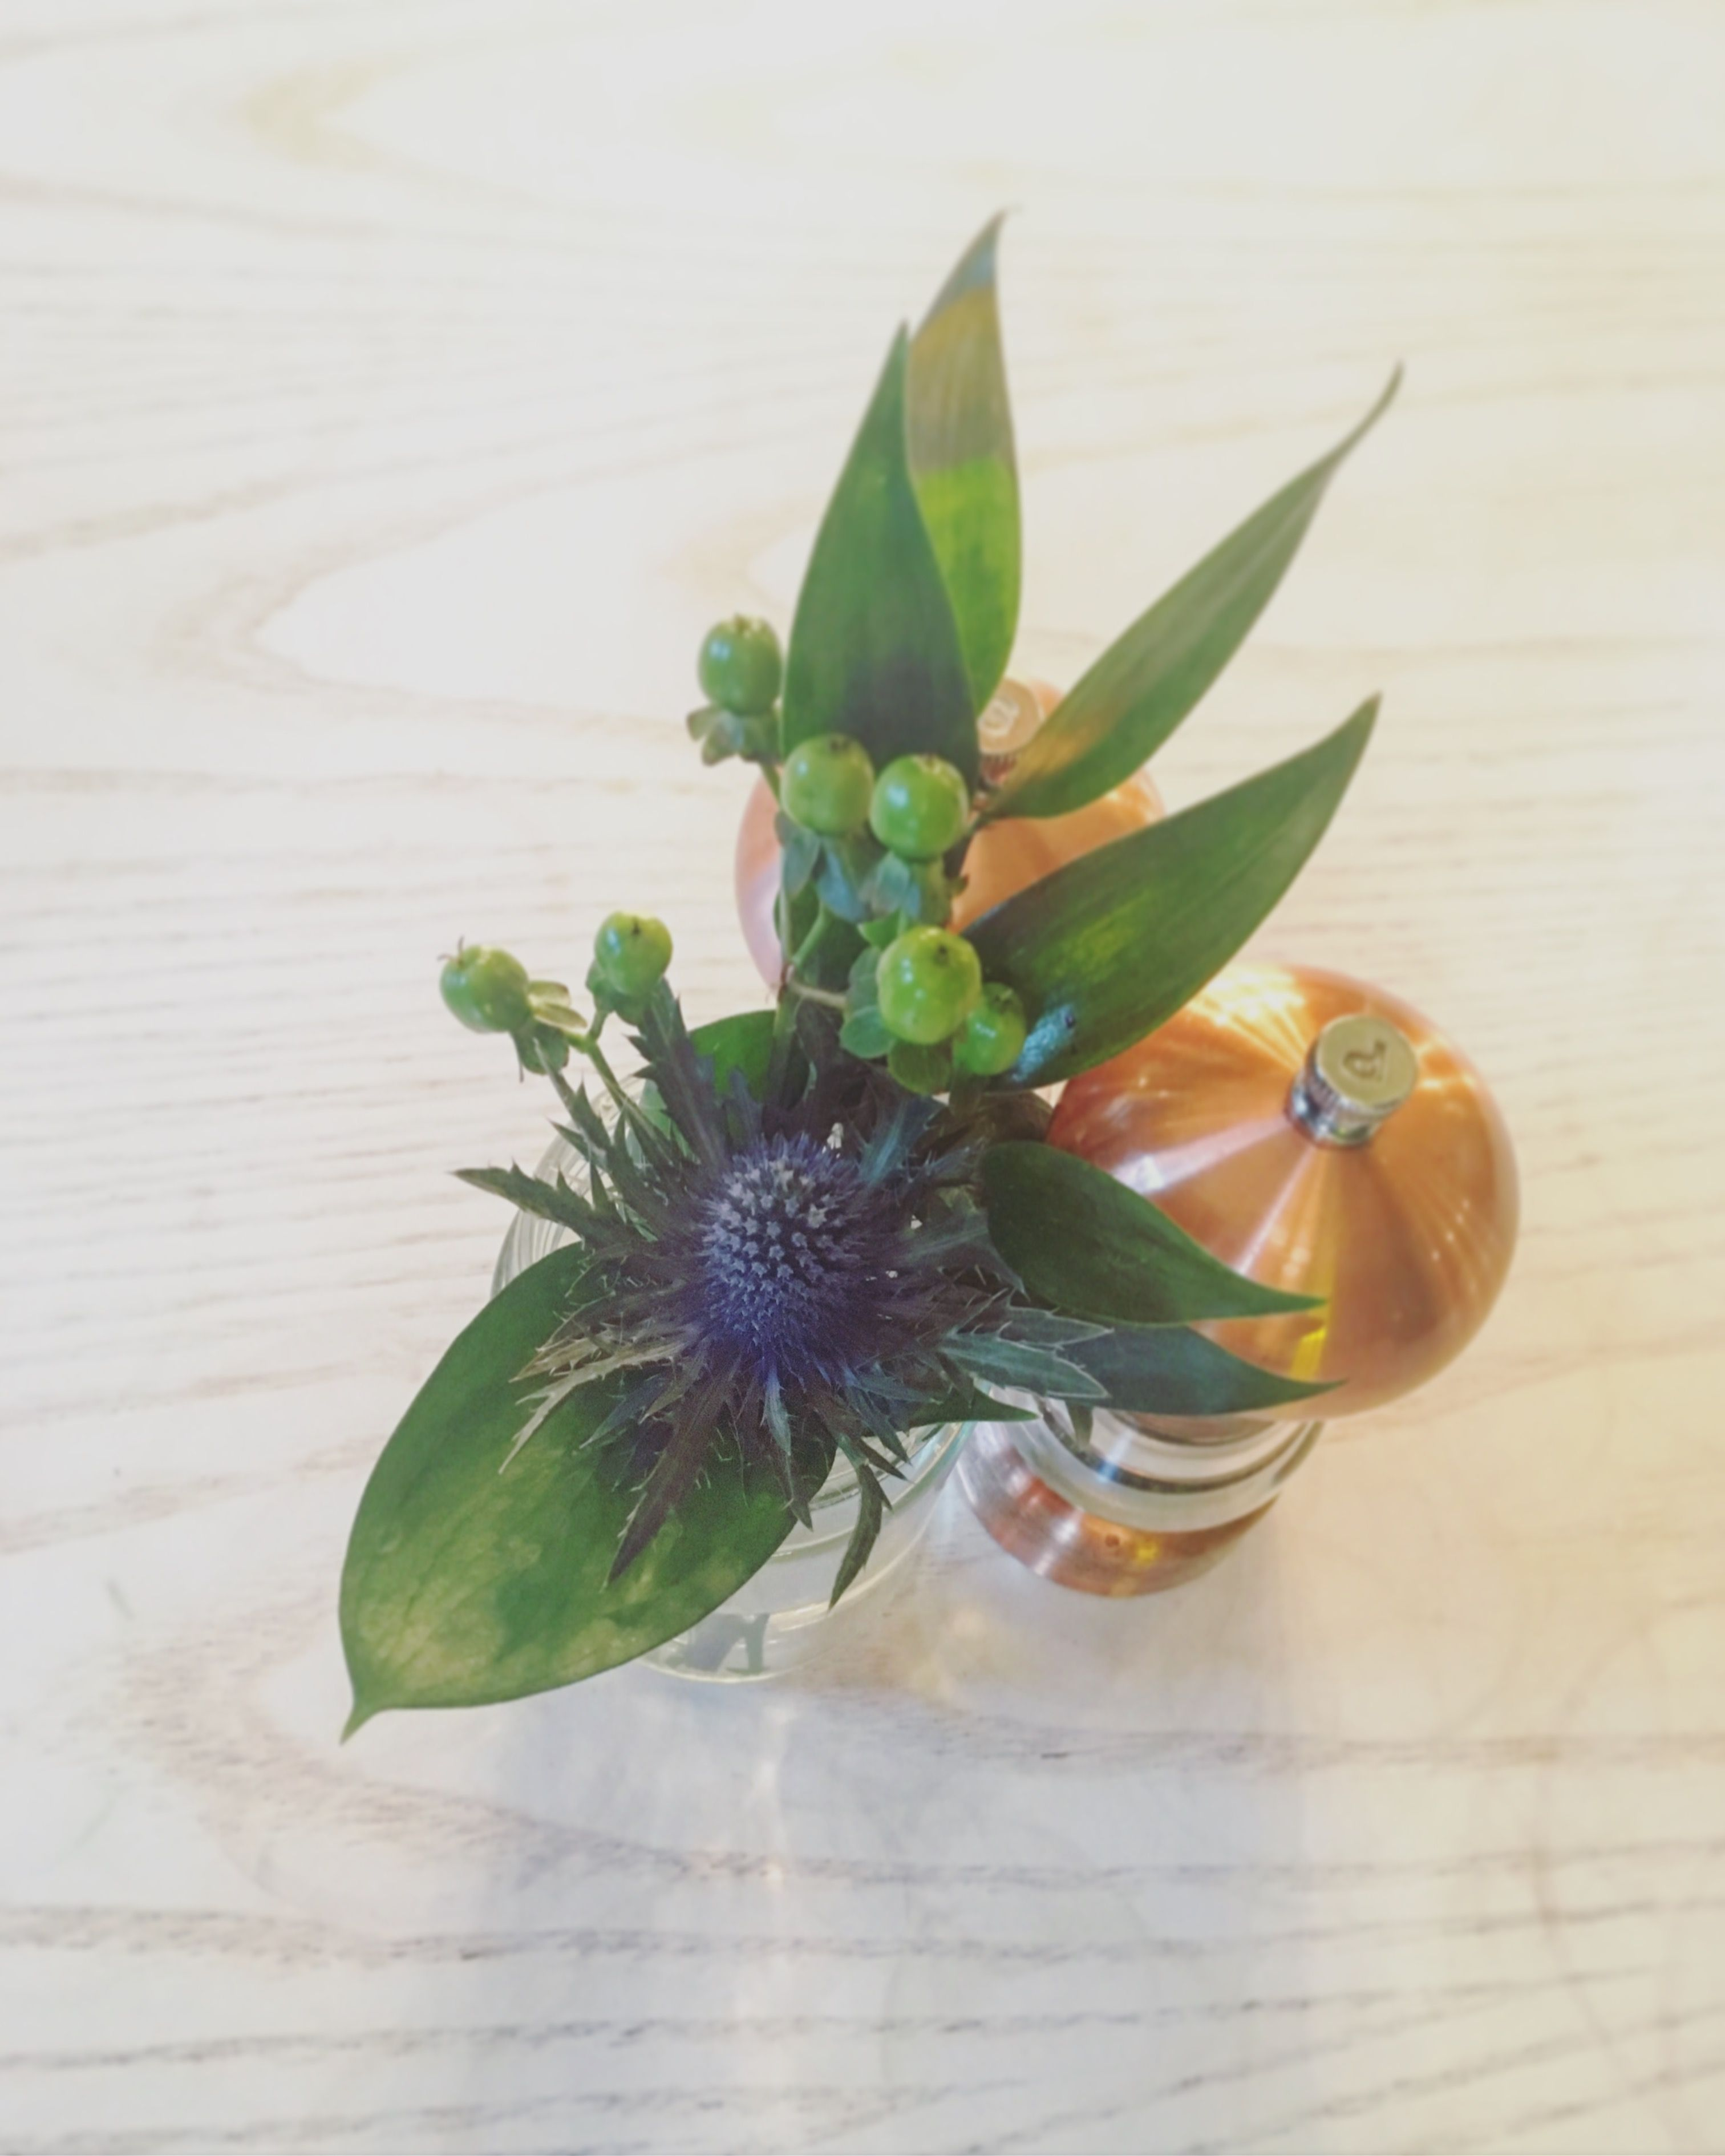 Thistles are popping up everywhere, I predict a new trend coming. Flowers are the perfect table decoration.